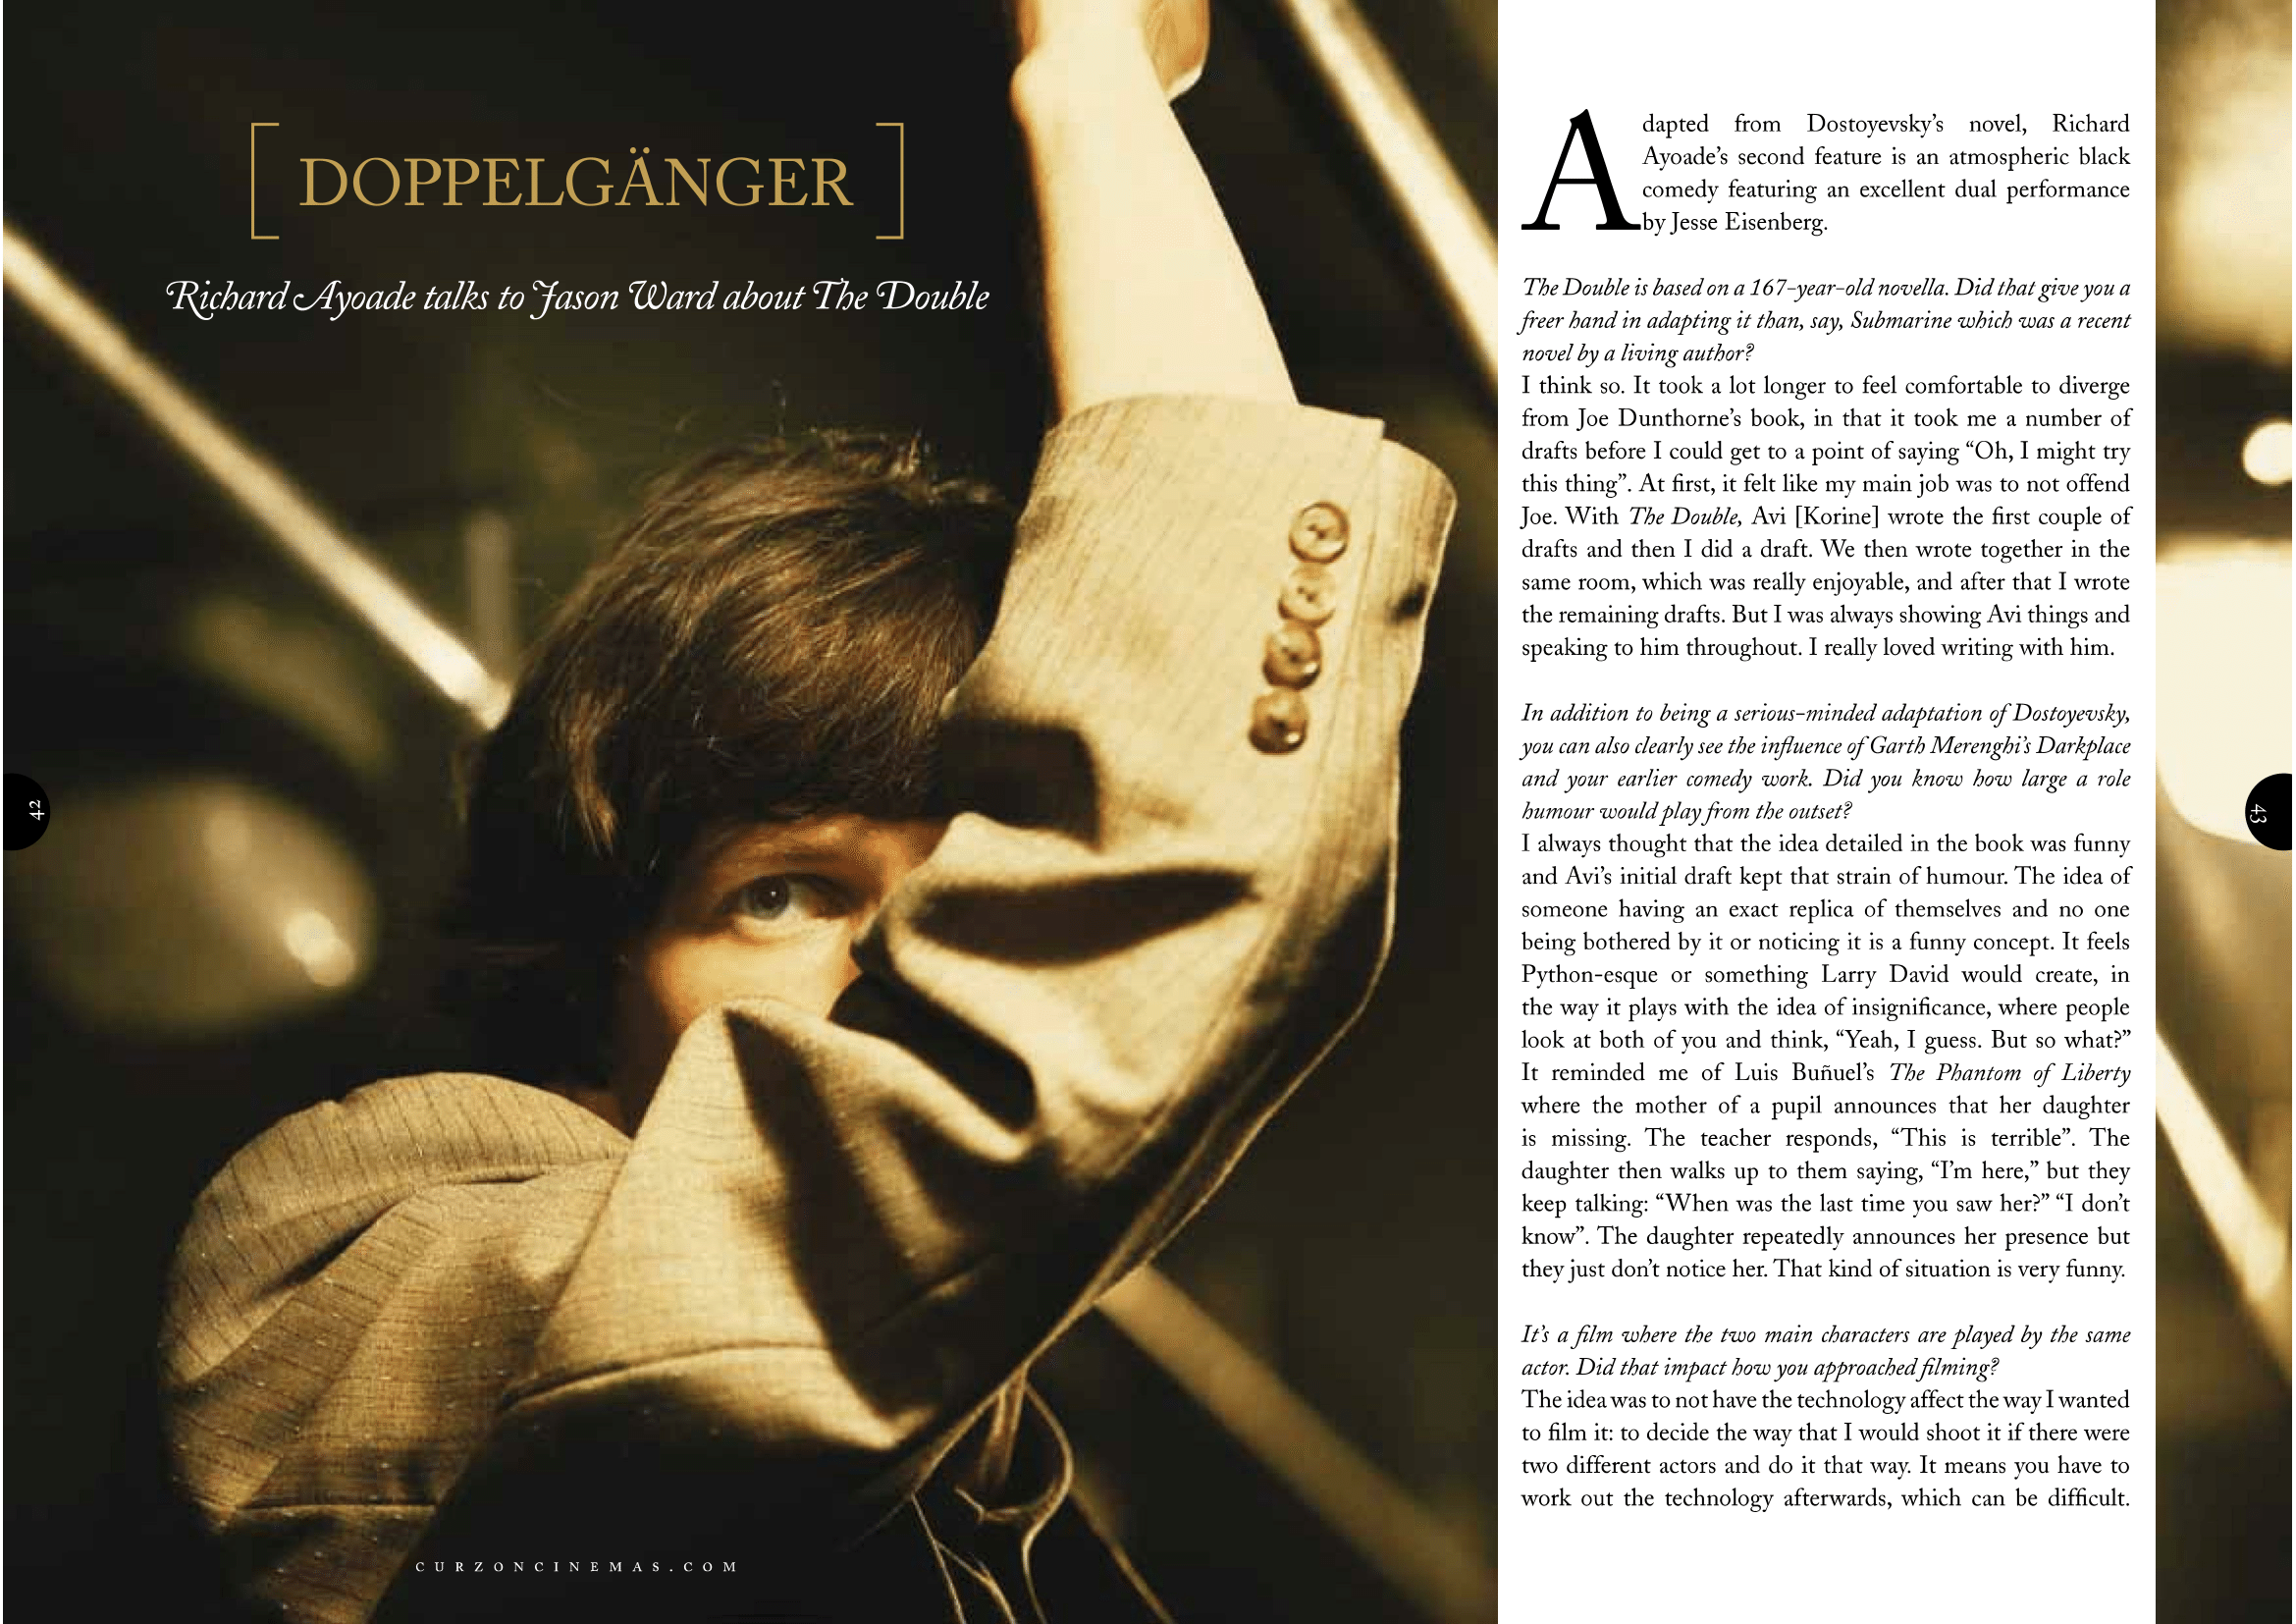 Richard Ayoade (The Double) interview / Curzon Magazine